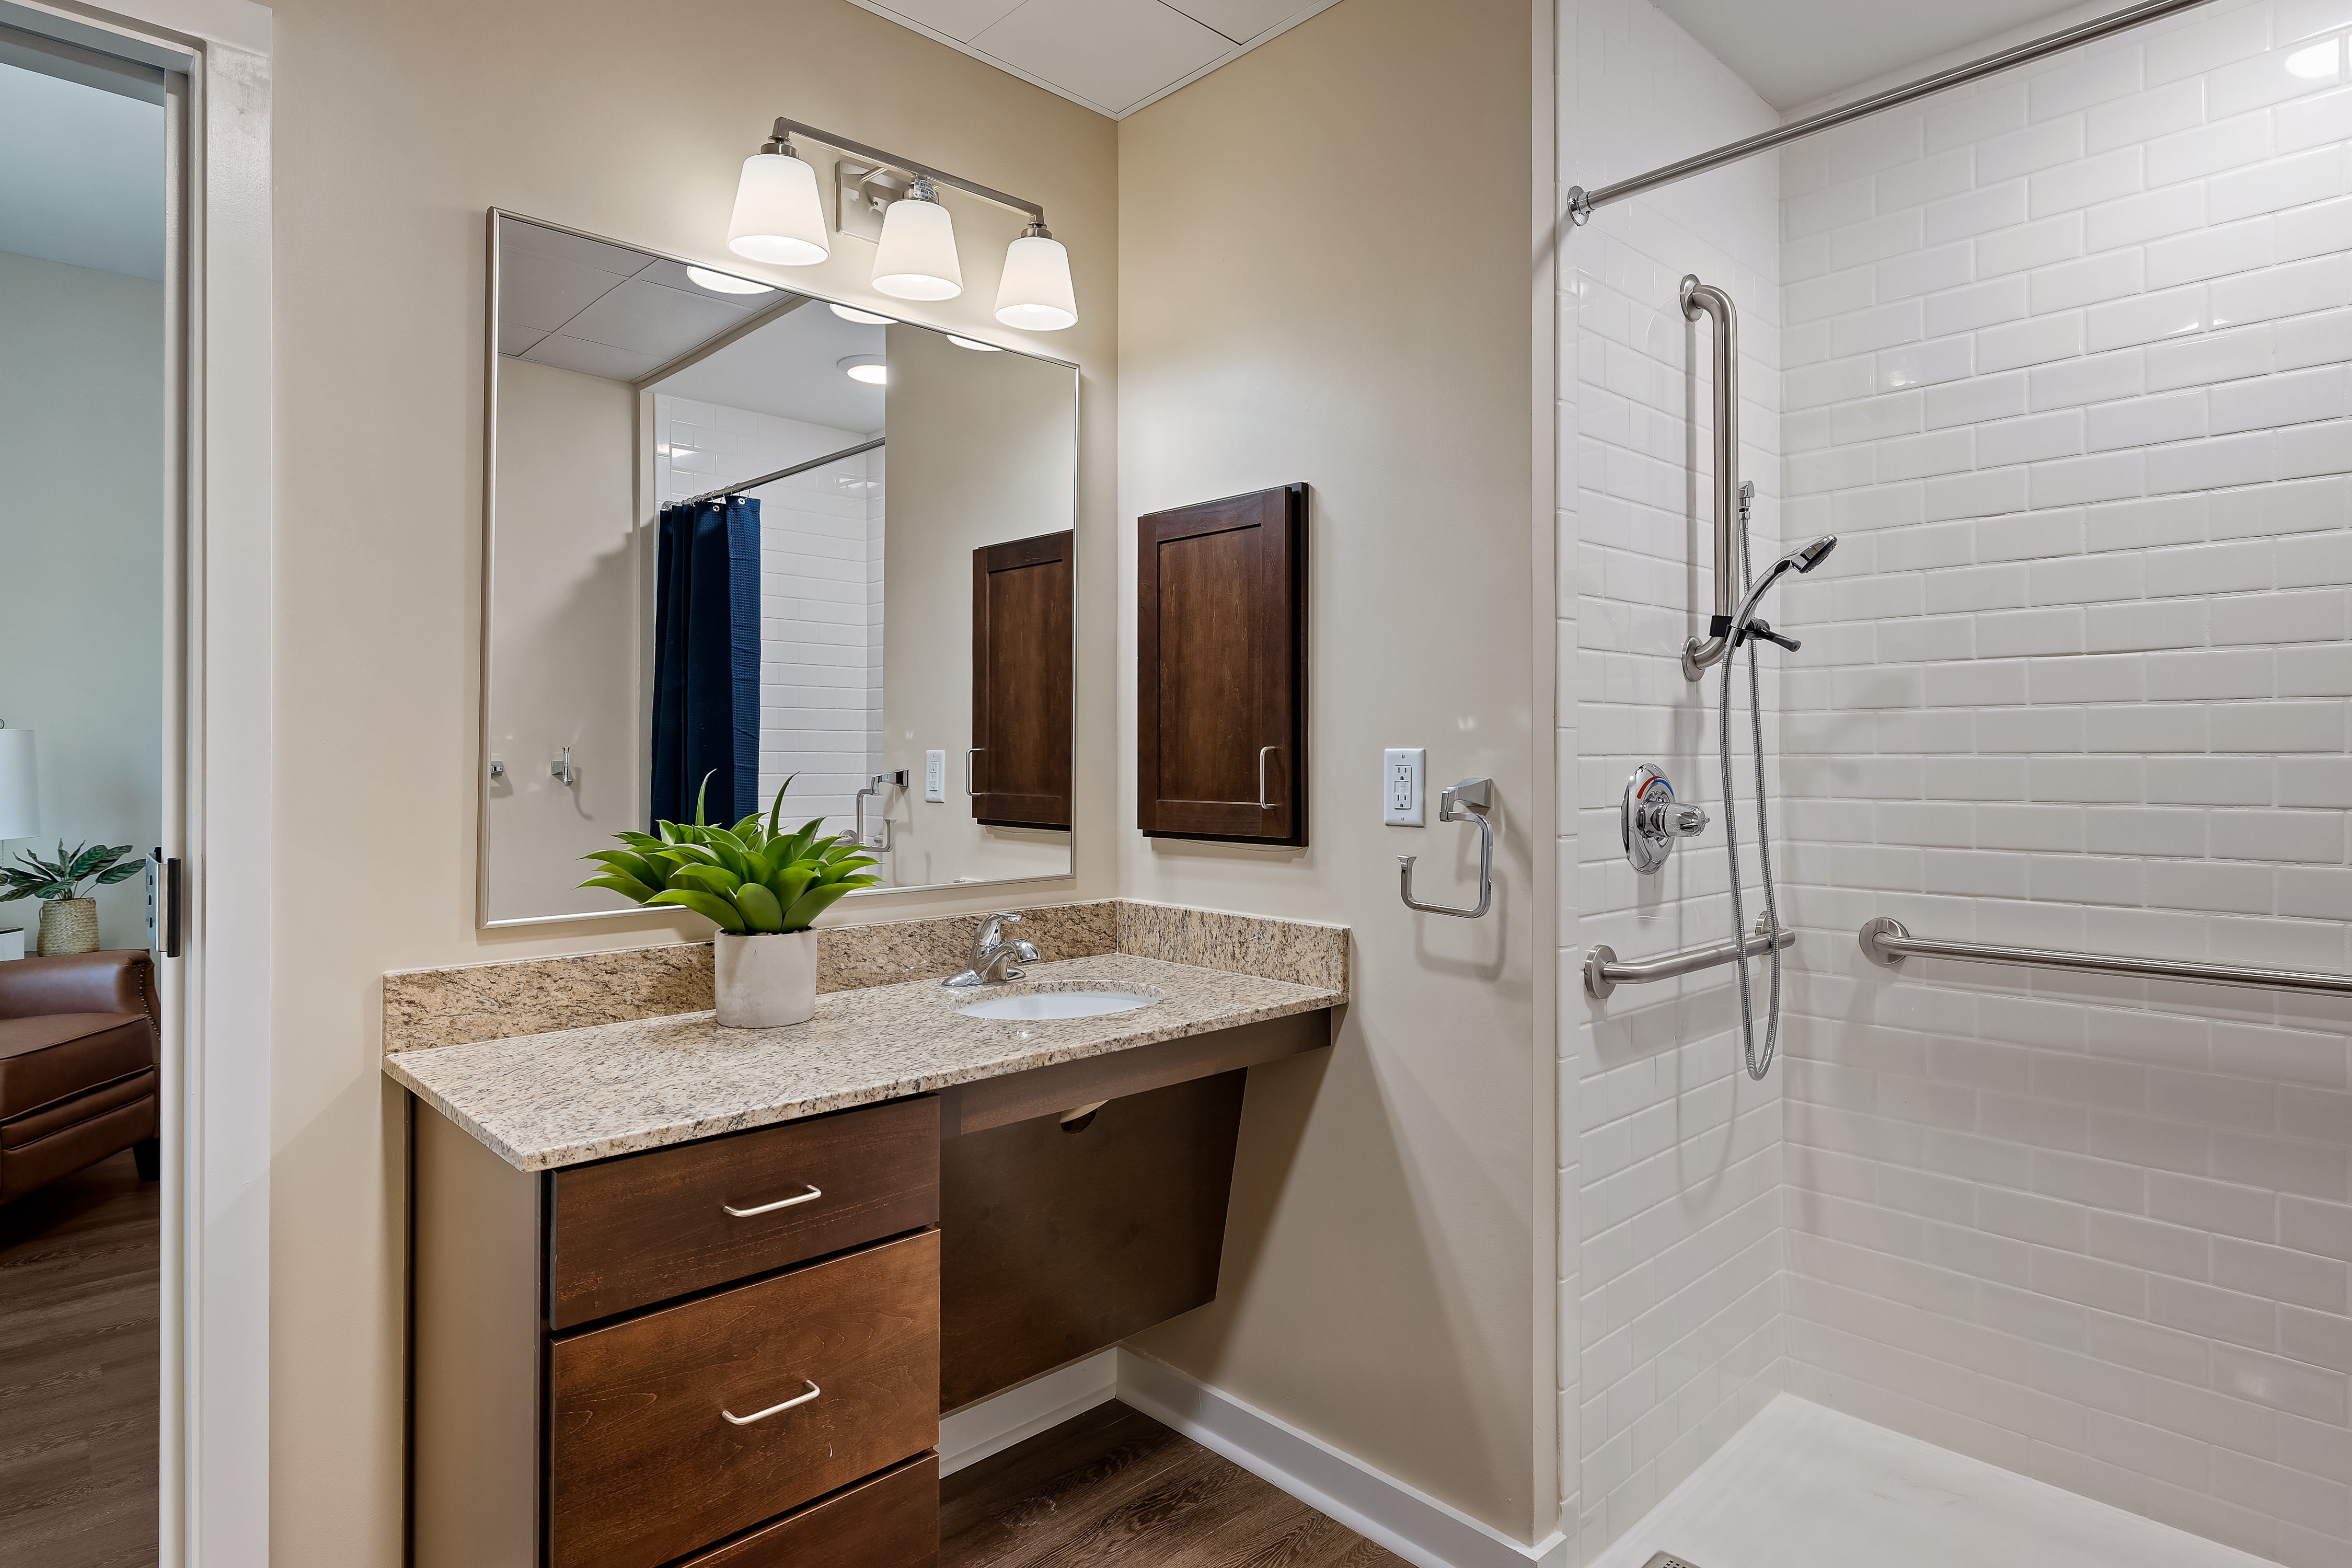 Easy access shower and wood finish sink at The Claiborne at Newnan Lakes in Newnan, GA